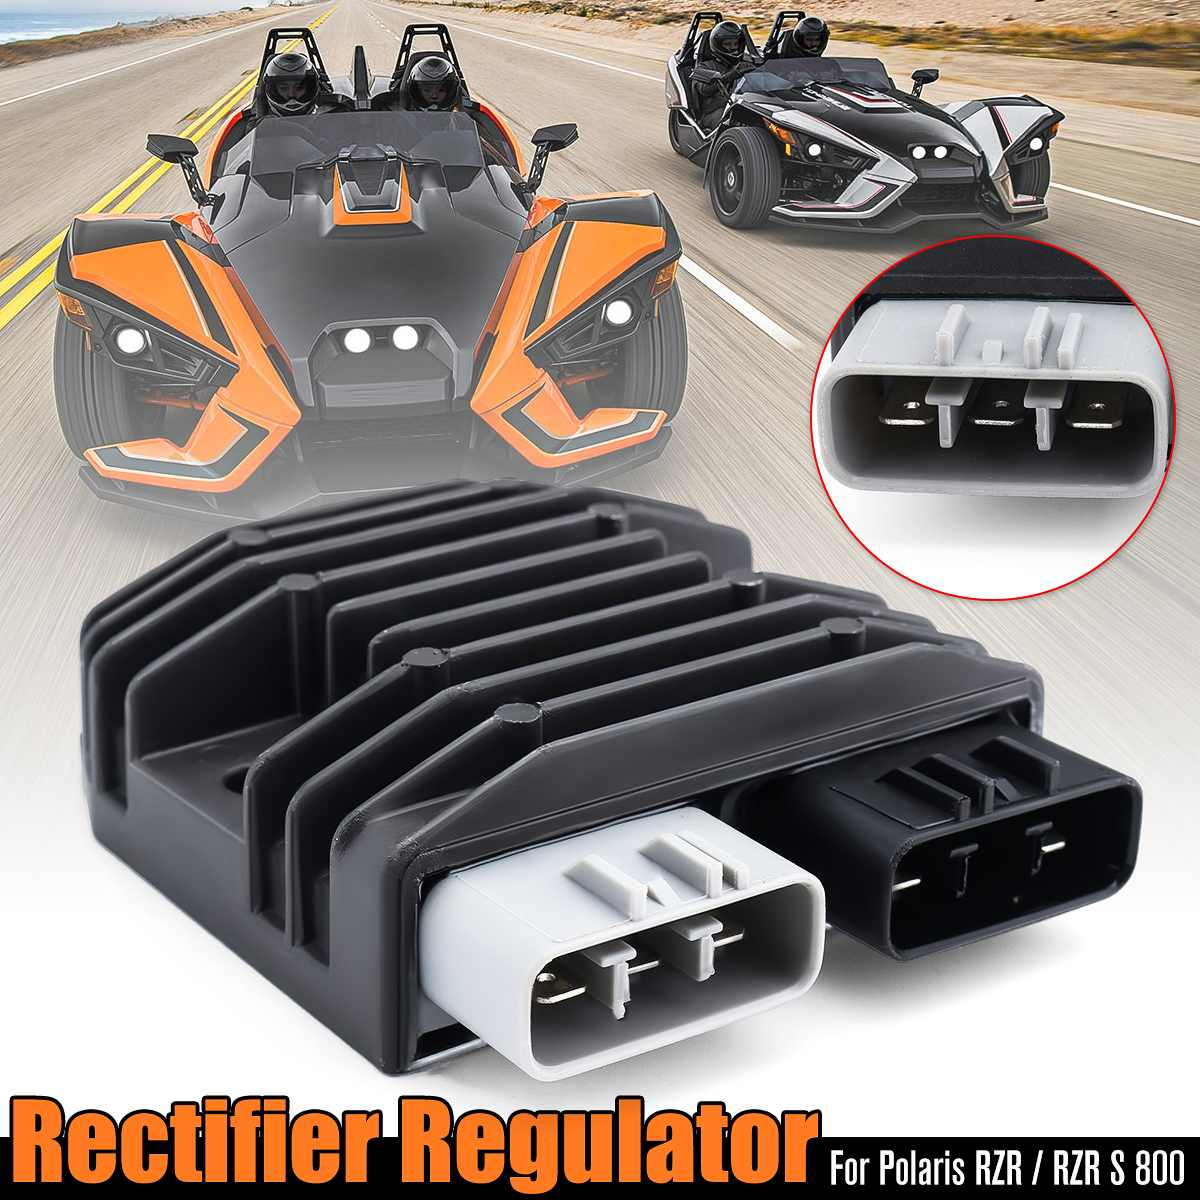 Motorcycle Parts Voltage Regulator Rectifier For 760cc For Polaris 2011 2012 2013 2014 RZR/RZR S <font><b>800</b></font> <font><b>UTV</b></font> ATV Motorcycle Ignition image